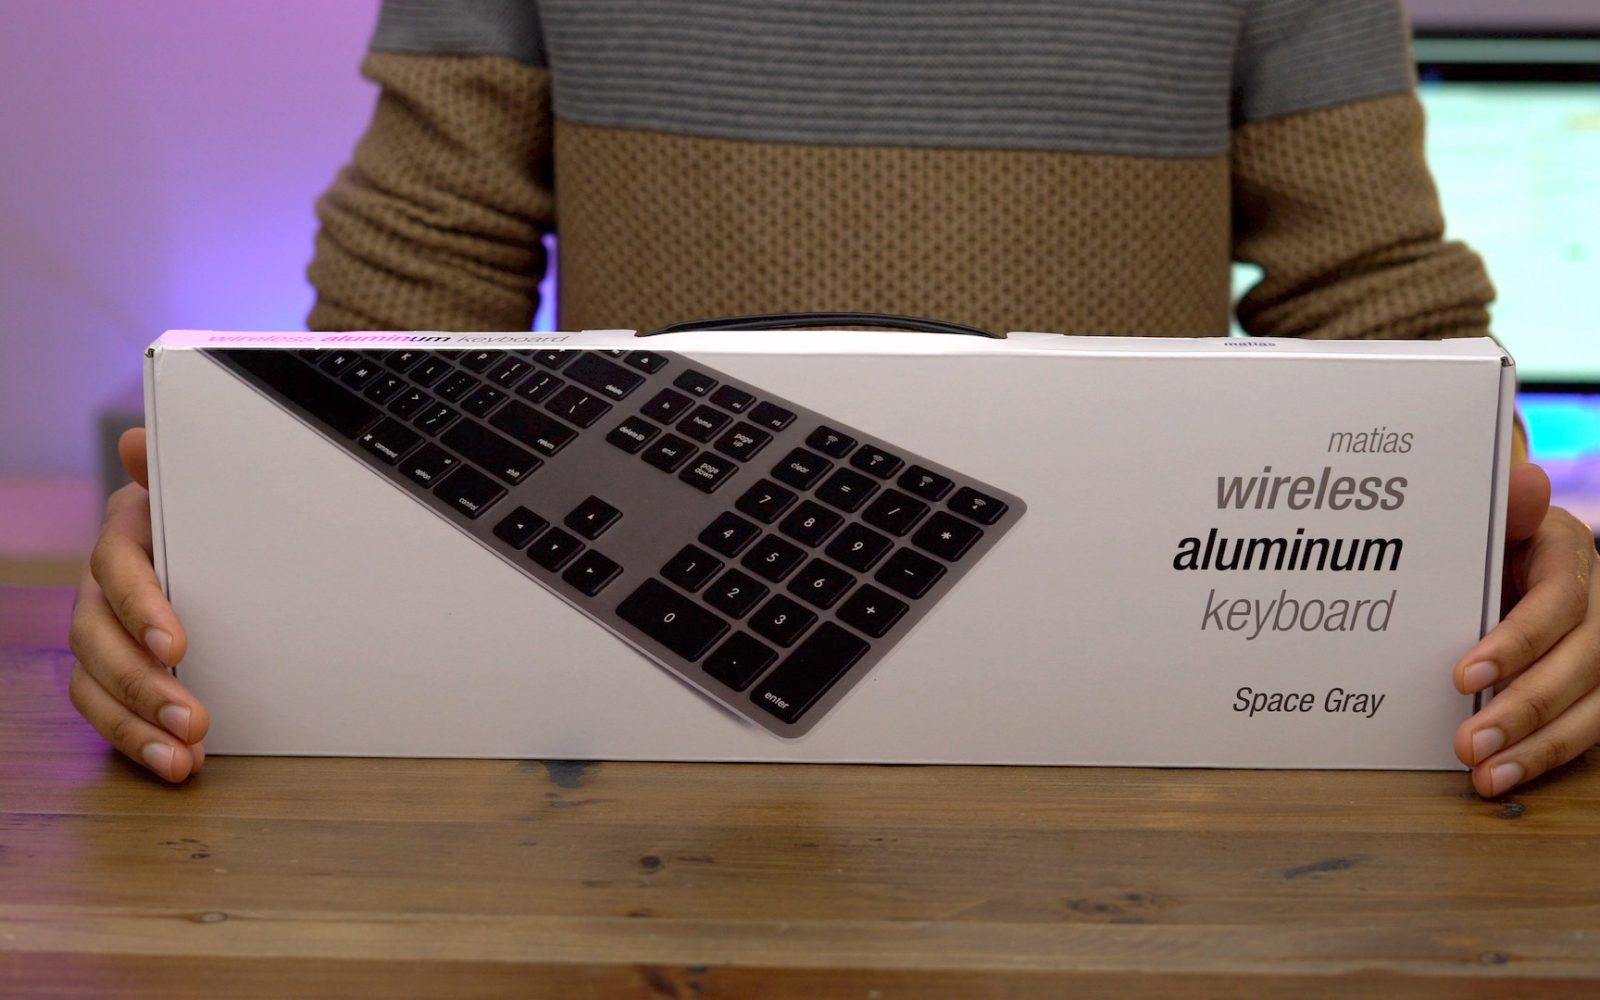 The Matias Wireless Aluminum Keyboard Is Apple Should Mini I8 With 3 Colour Backlight Be Making Video